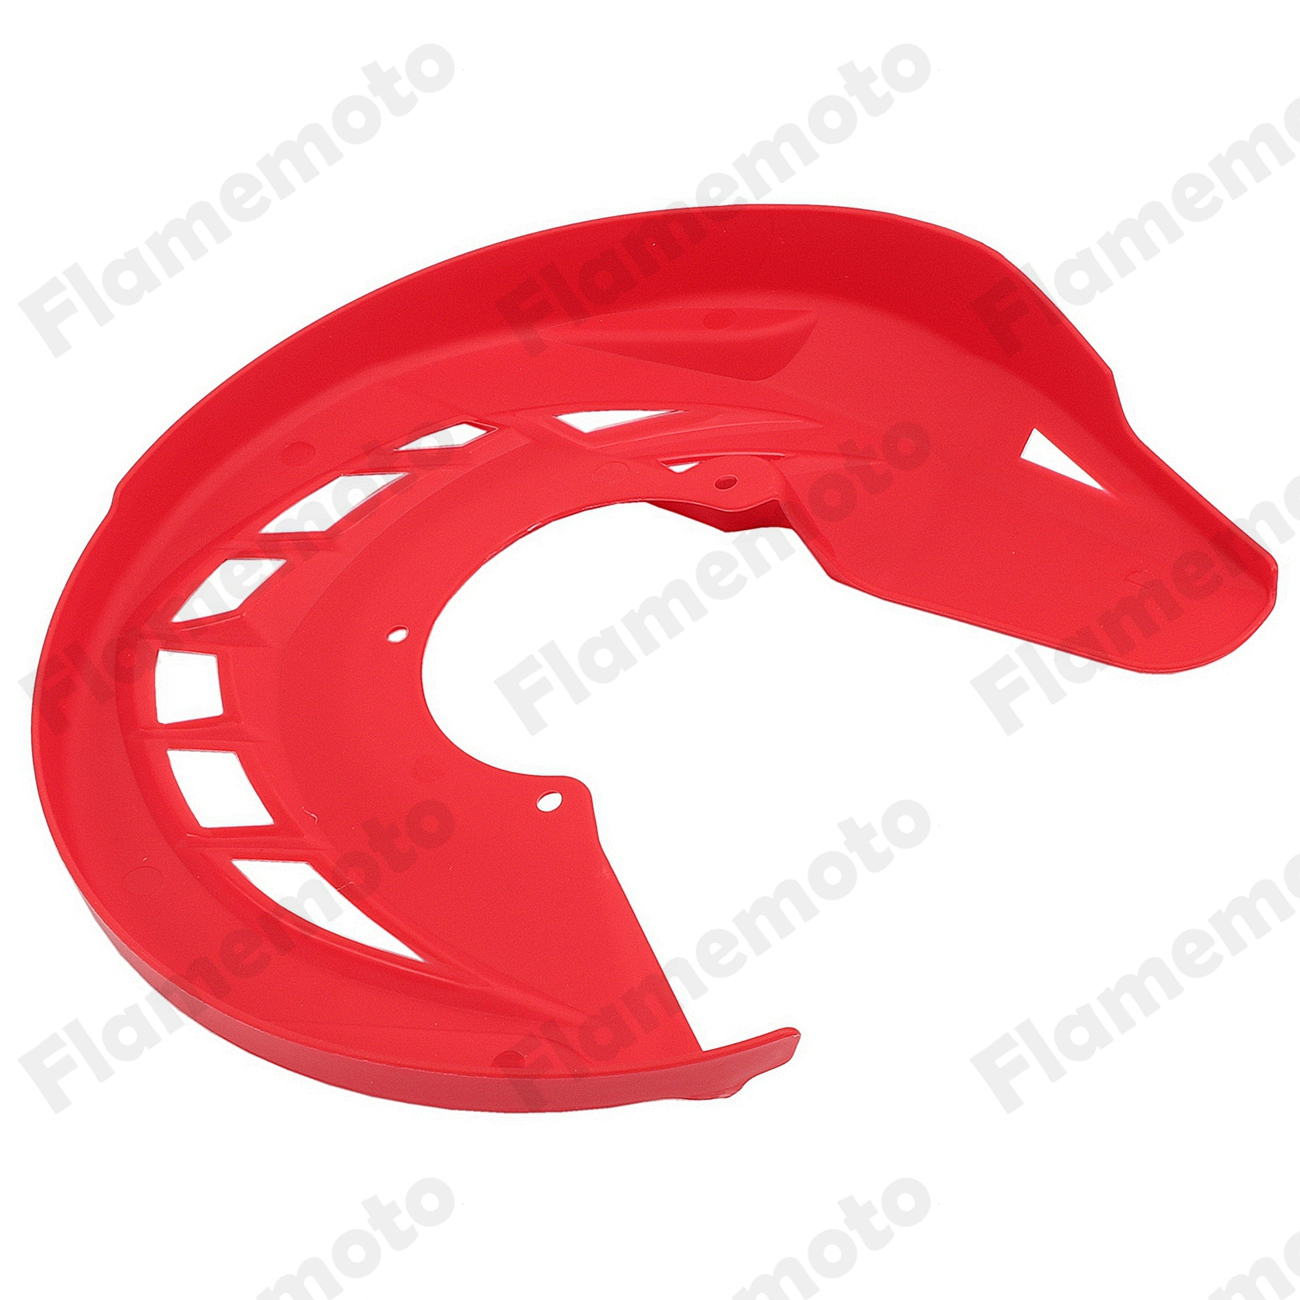 цены Red Motorcycle Bike Parts Front Brake Disc Rotor Cover Guard w/ Mounting For Honda CRF250L M  2012 2013 2014 2015 2016